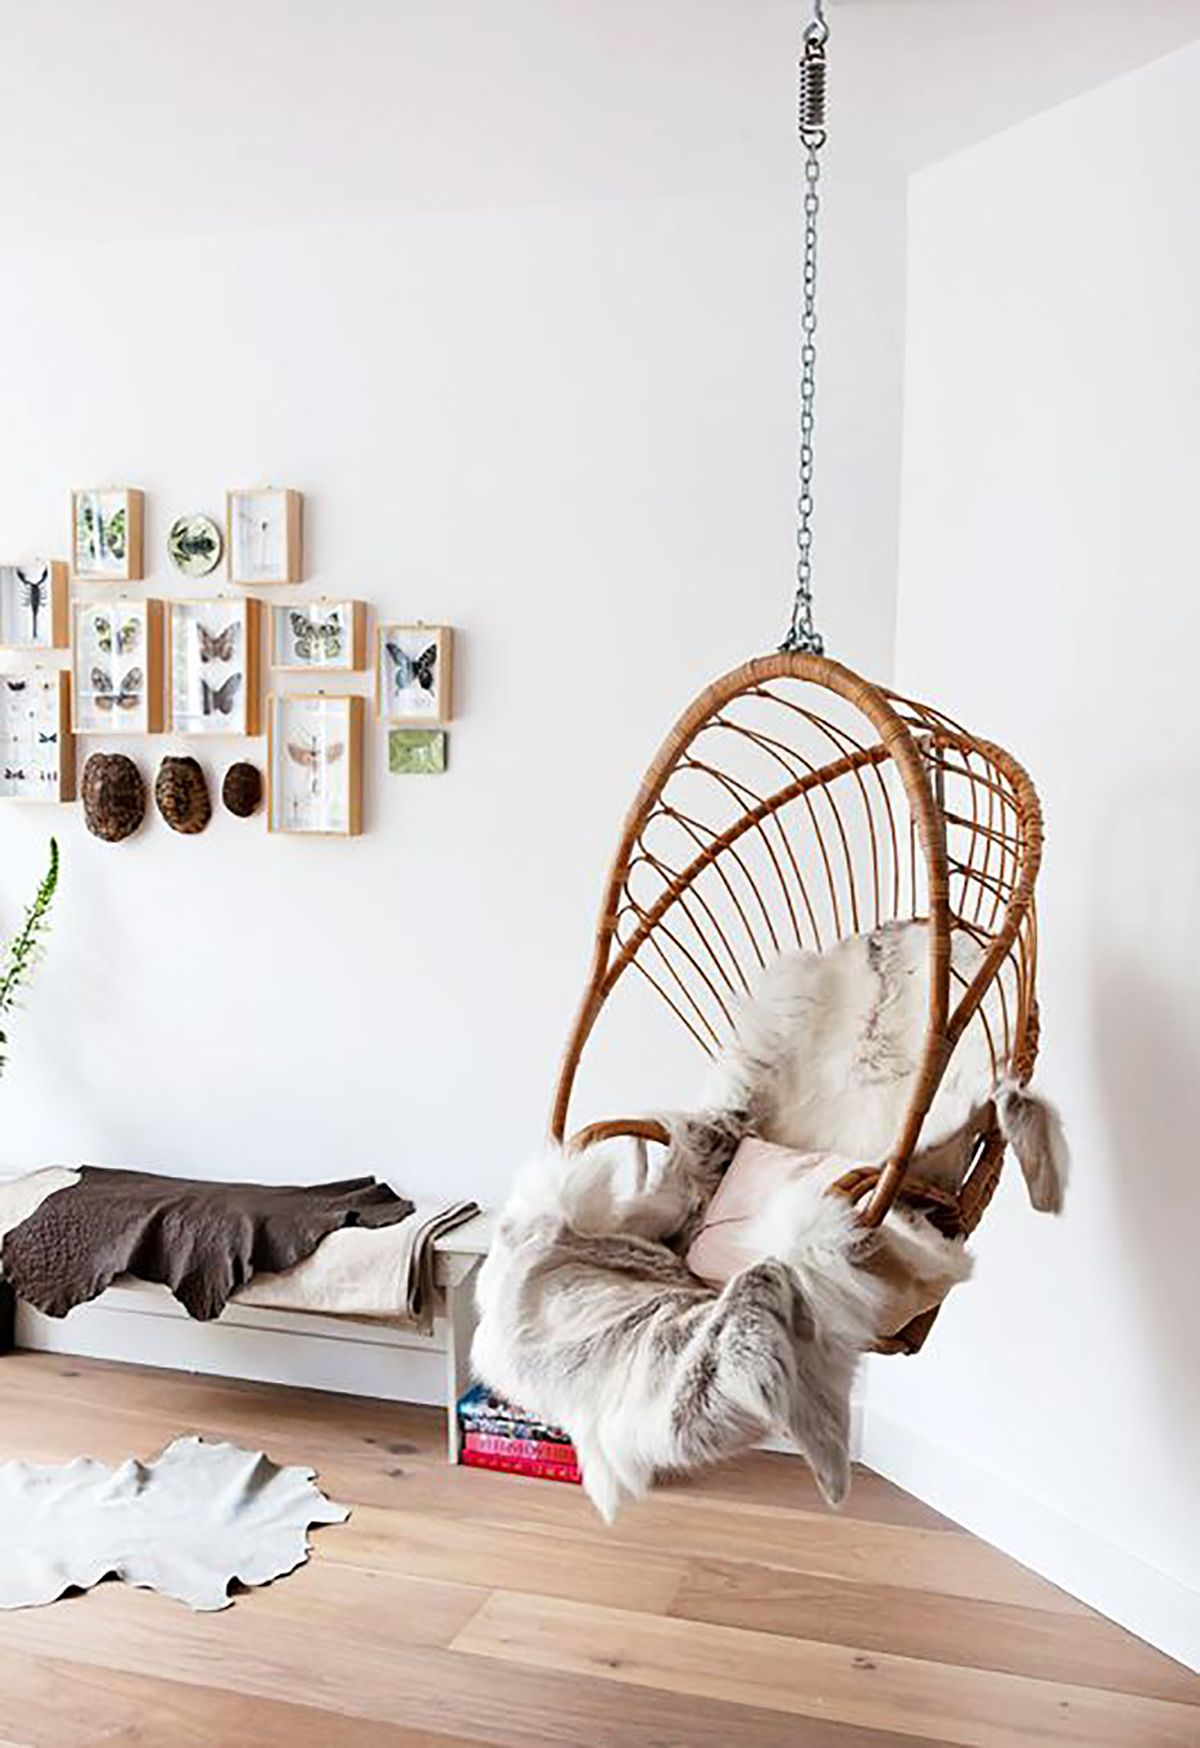 Guide on how to efficiently improve your house in home decor